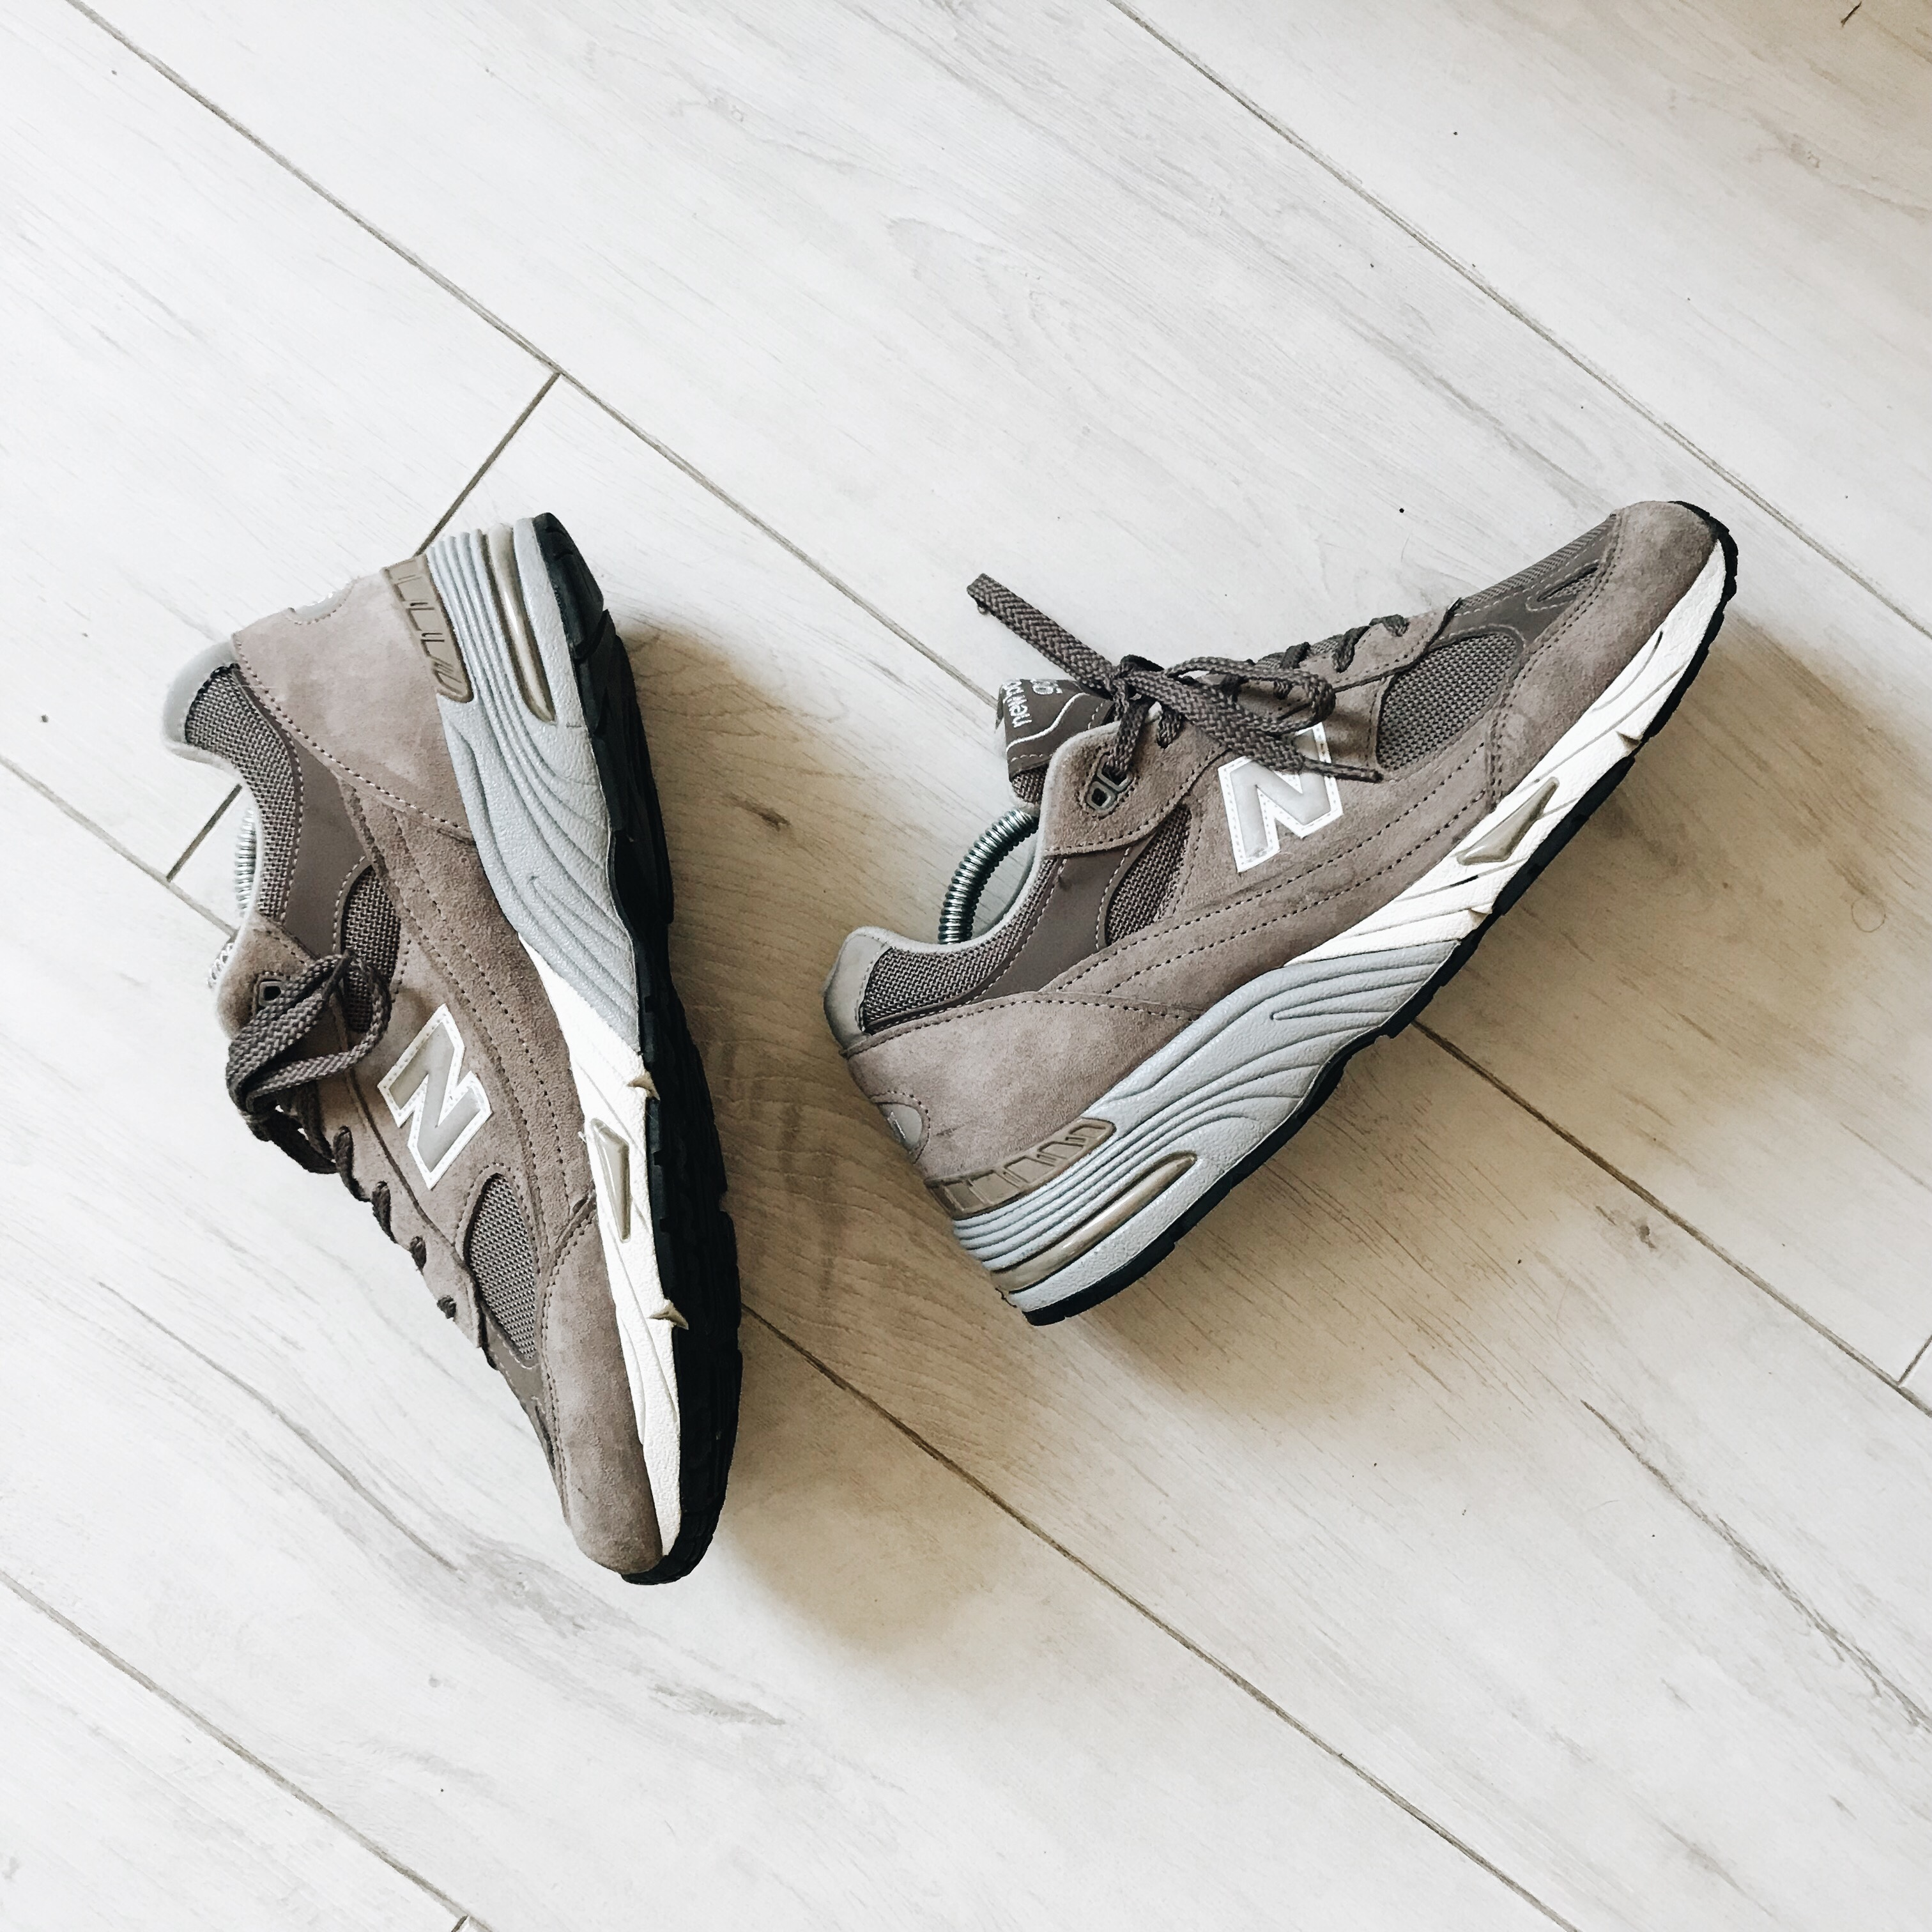 New Balance 991 cappuccino, grey and